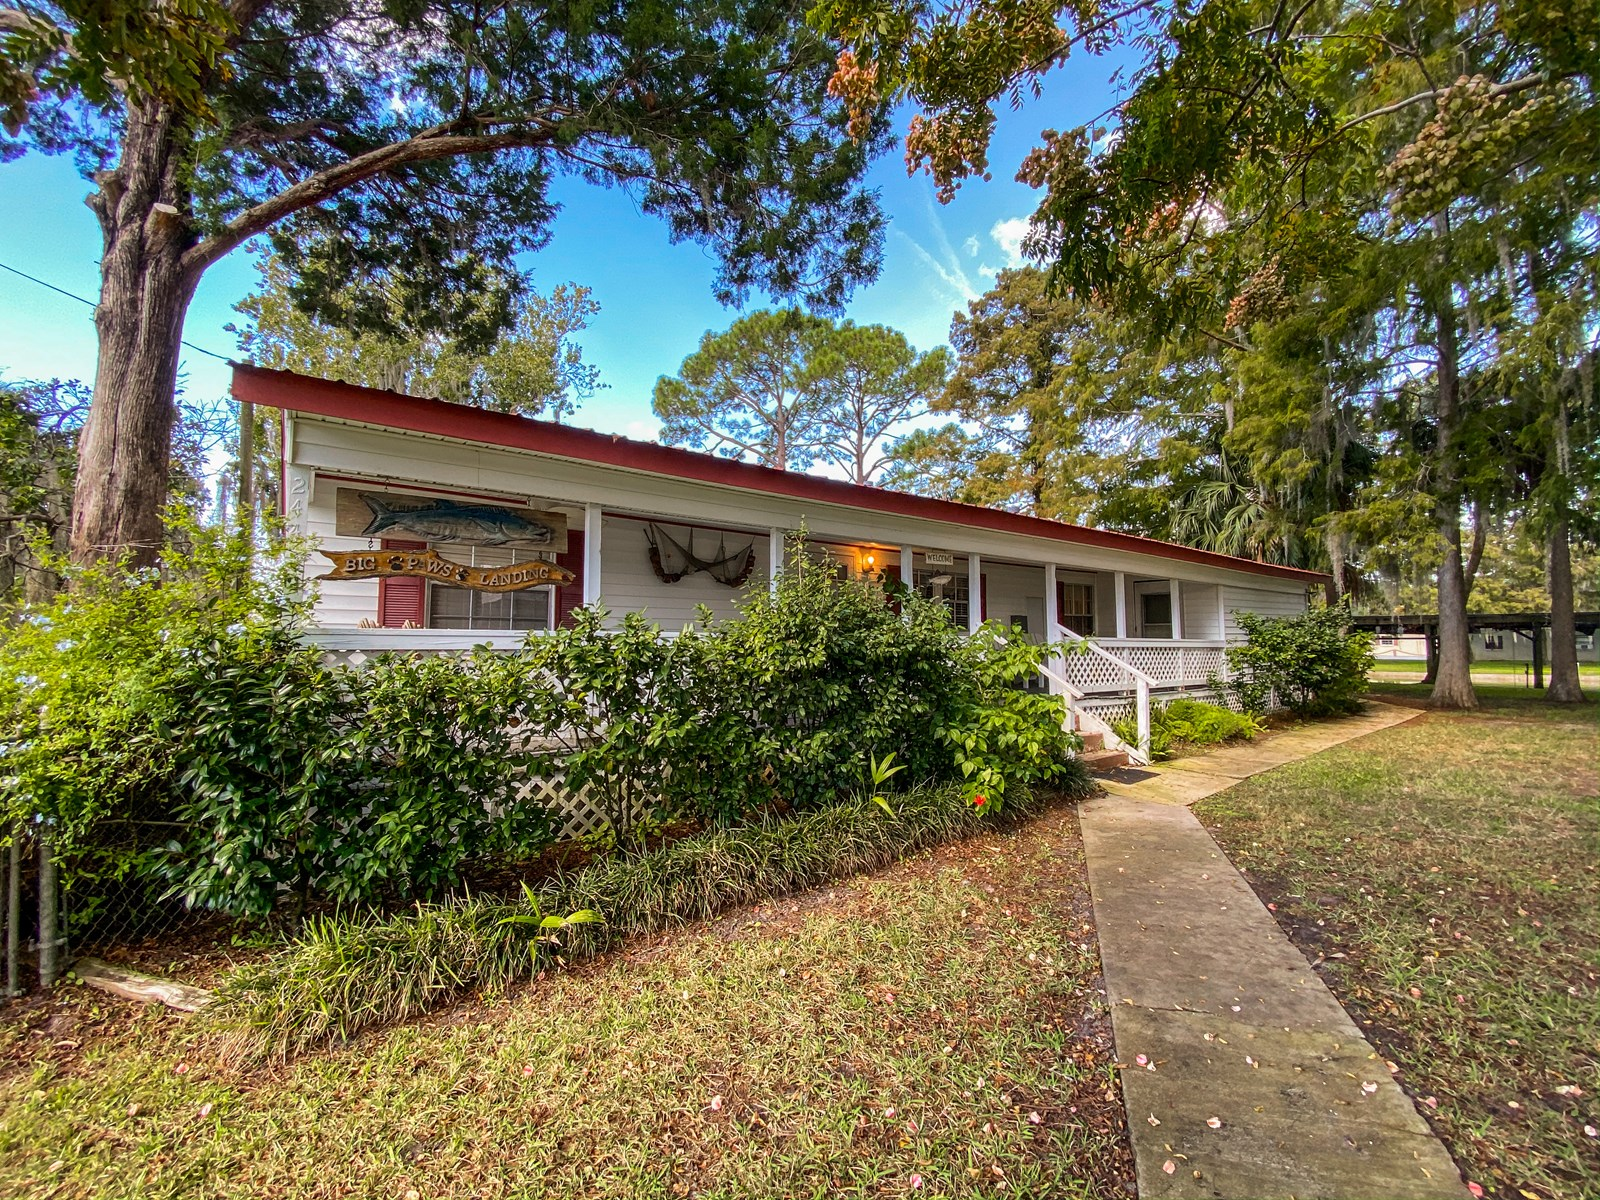 SUWANNEE FLORIDA WATERFRONT HOME FOR SALE - River Canal Home